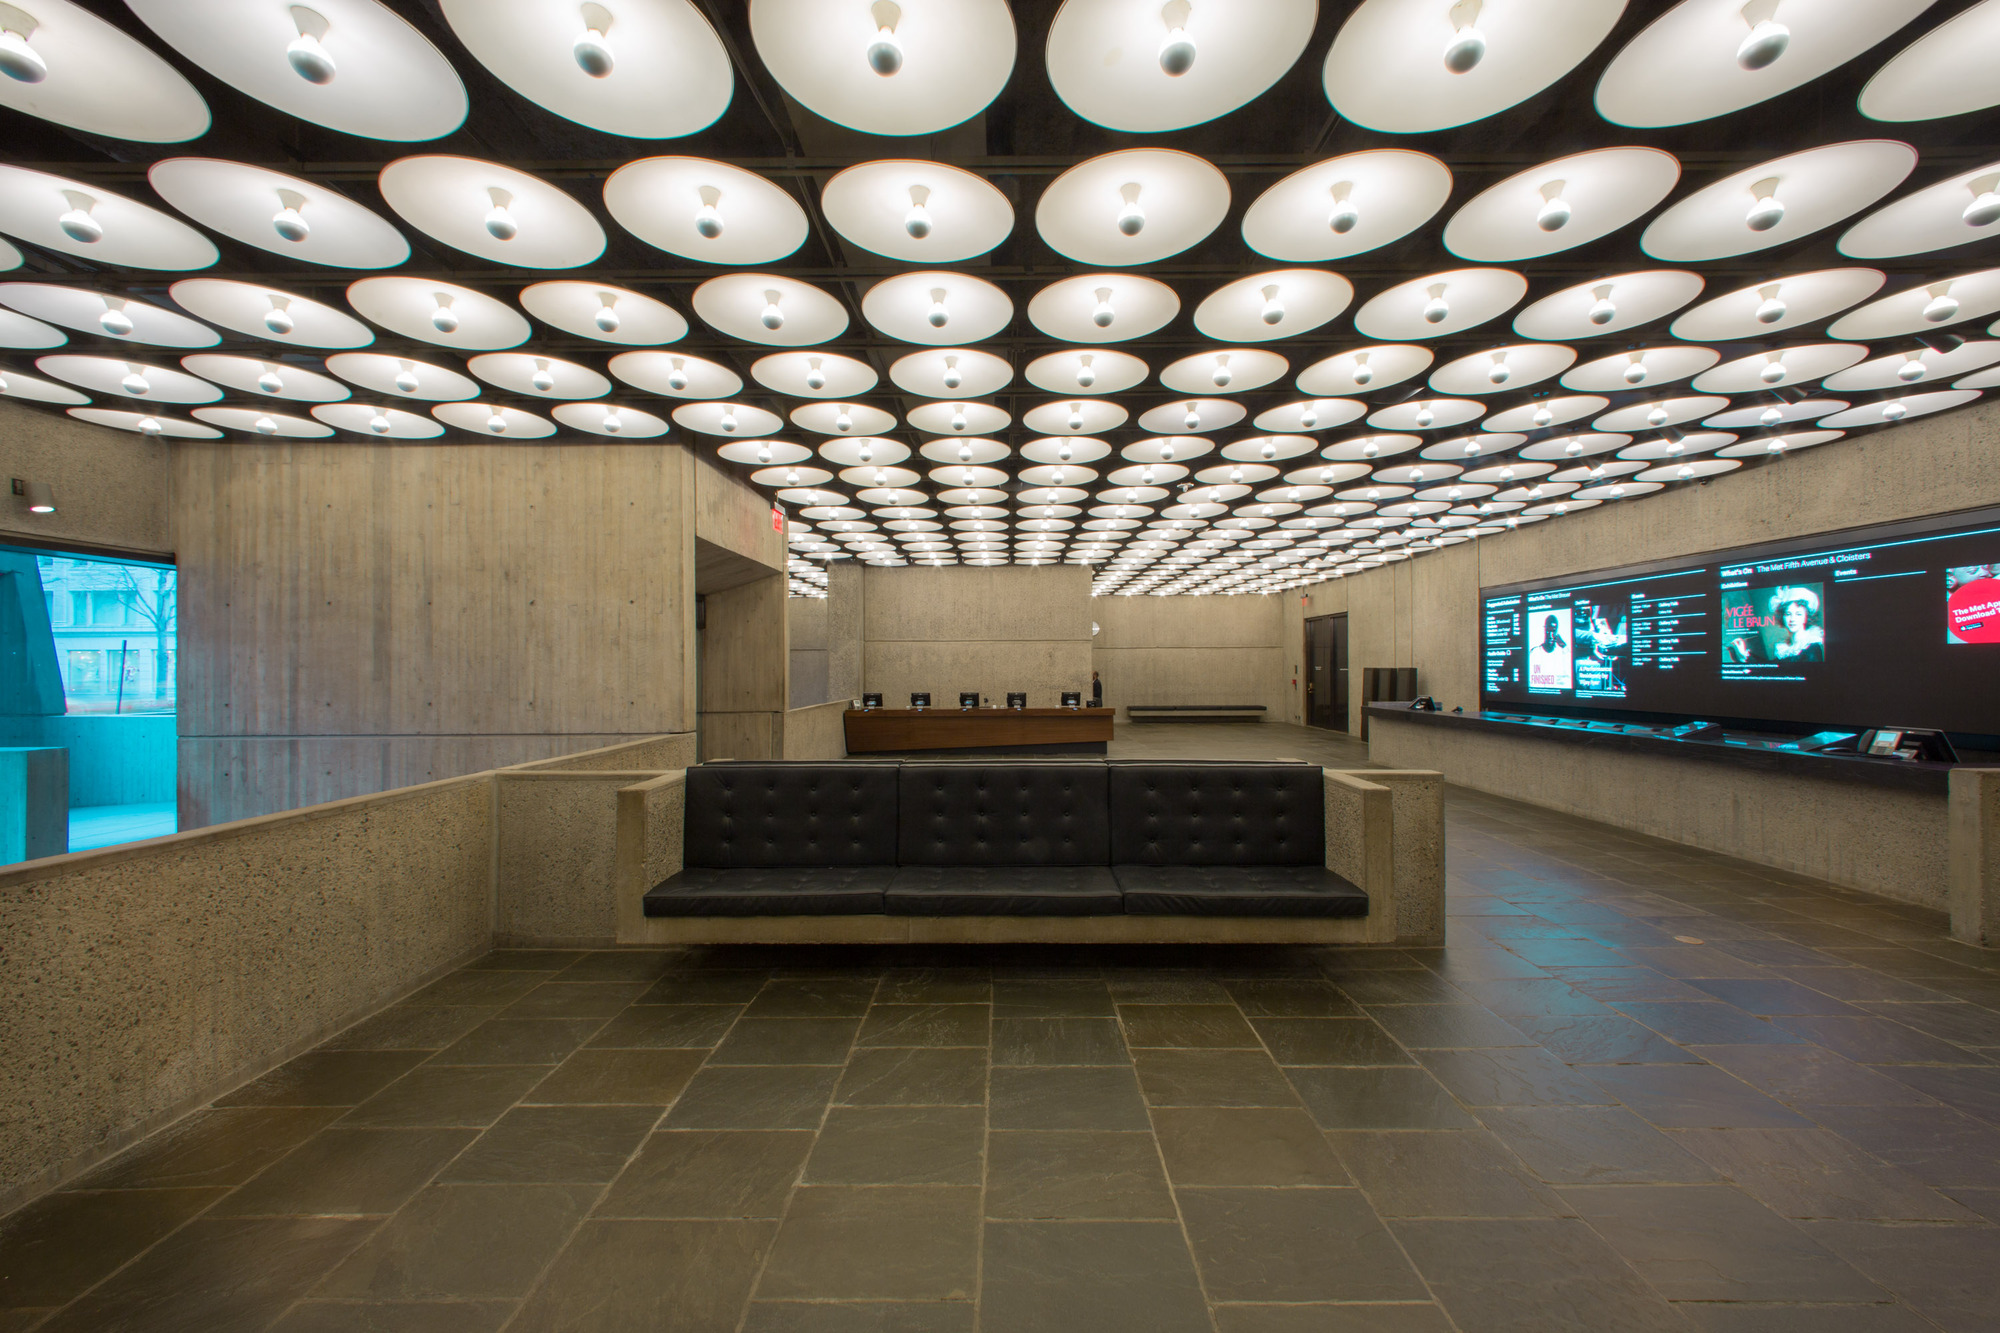 The Rink at Rockefeller Center New York City, The Met Breuer: A Loving Restoration of a Mid-Century Icon | ArchDaily